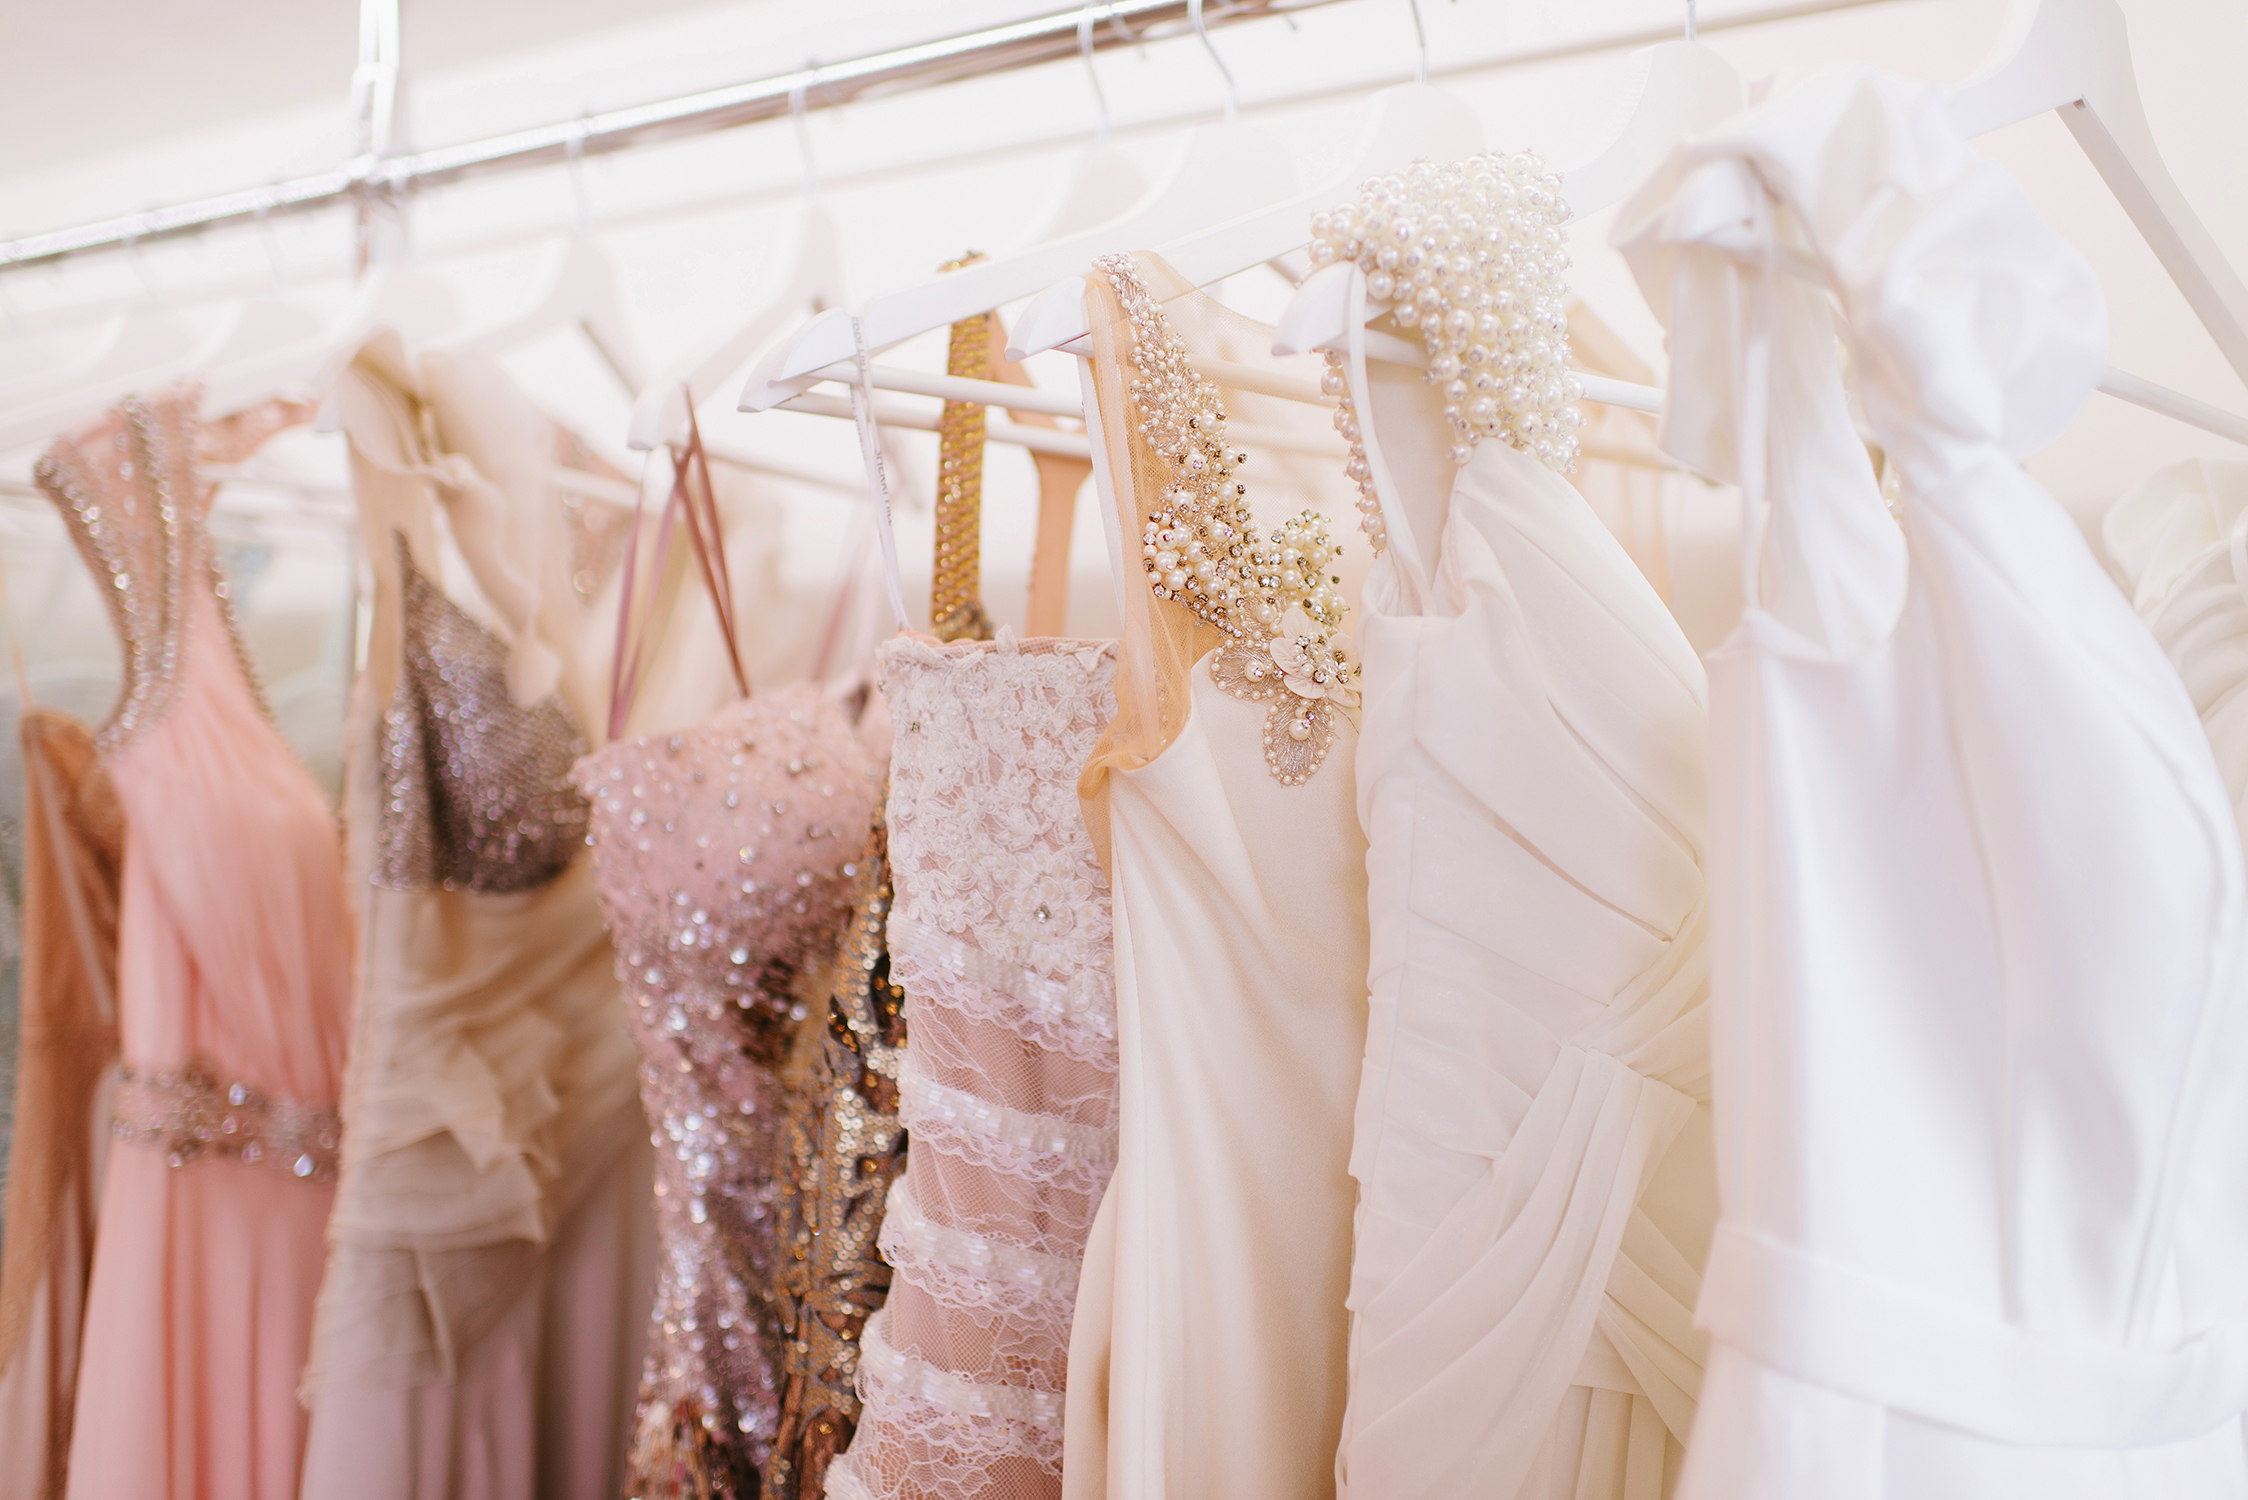 evening dresses hanging on a rack